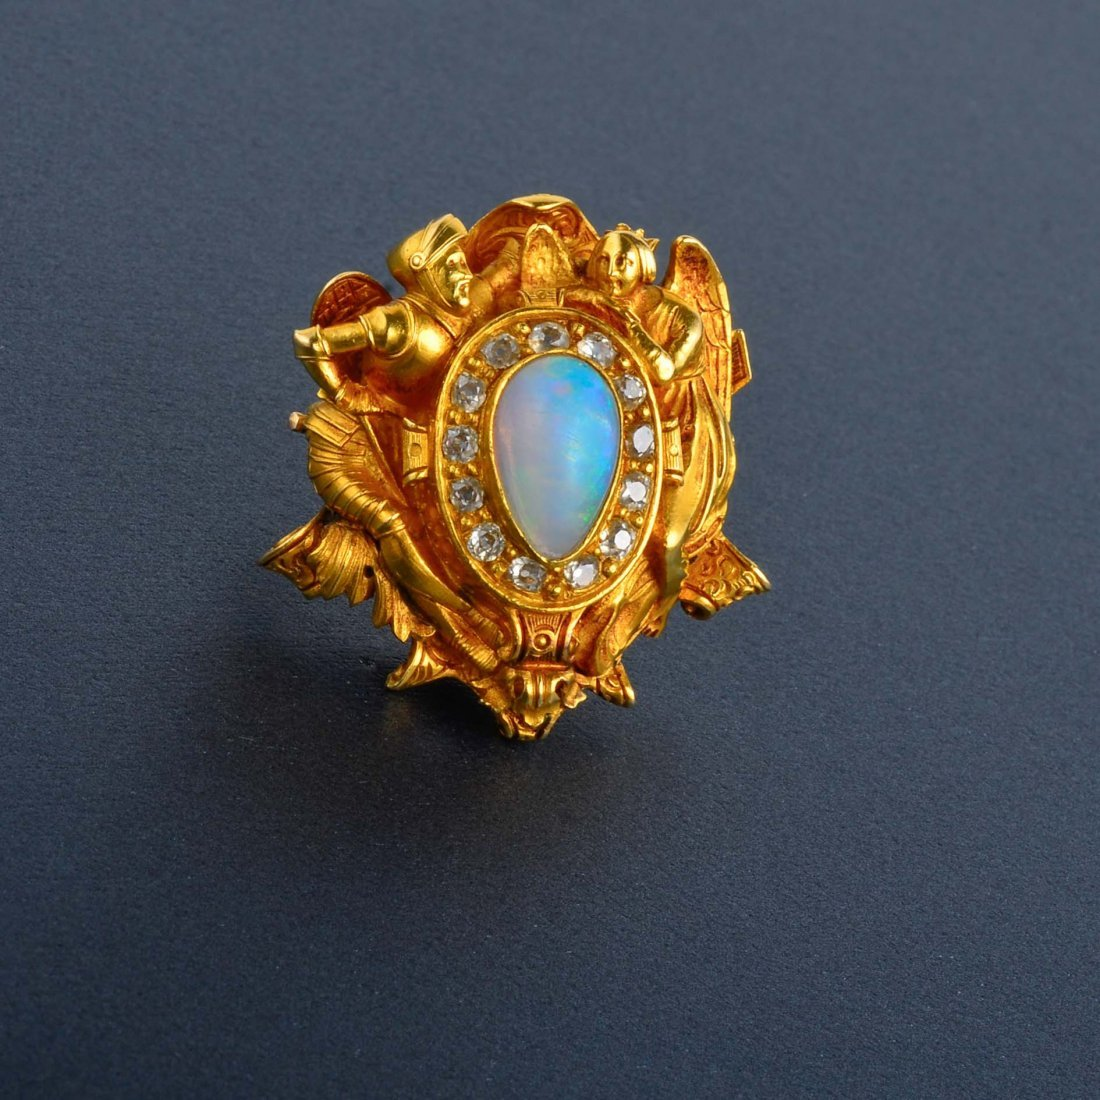 24: Antique Opal and Diamond Brooch